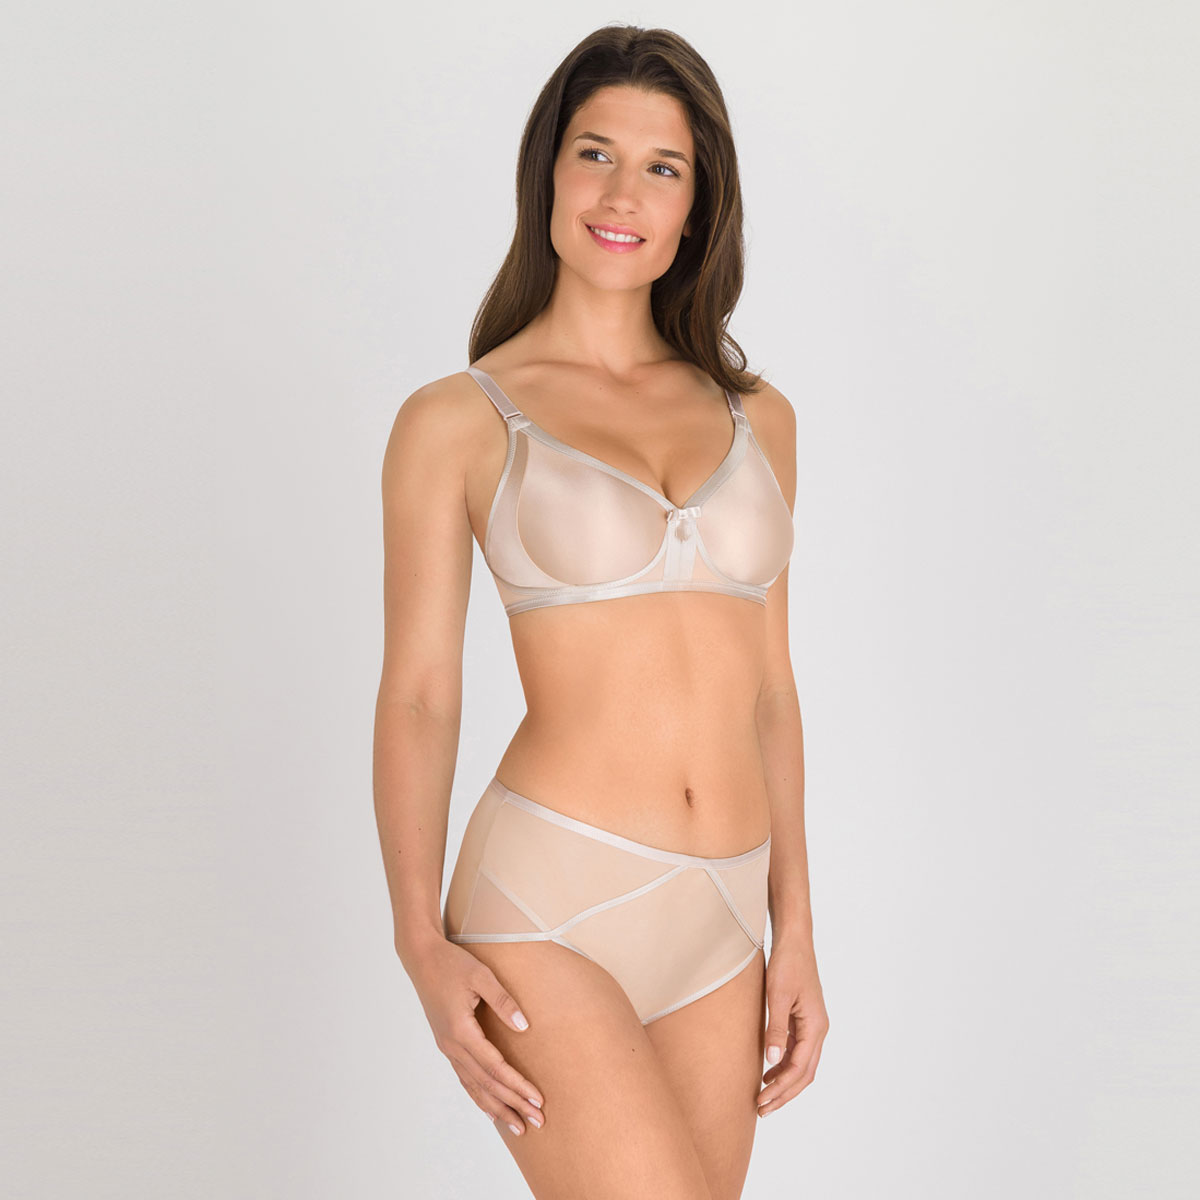 Soutien-gorge sans armatures beige - Ideal Beauty-PLAYTEX